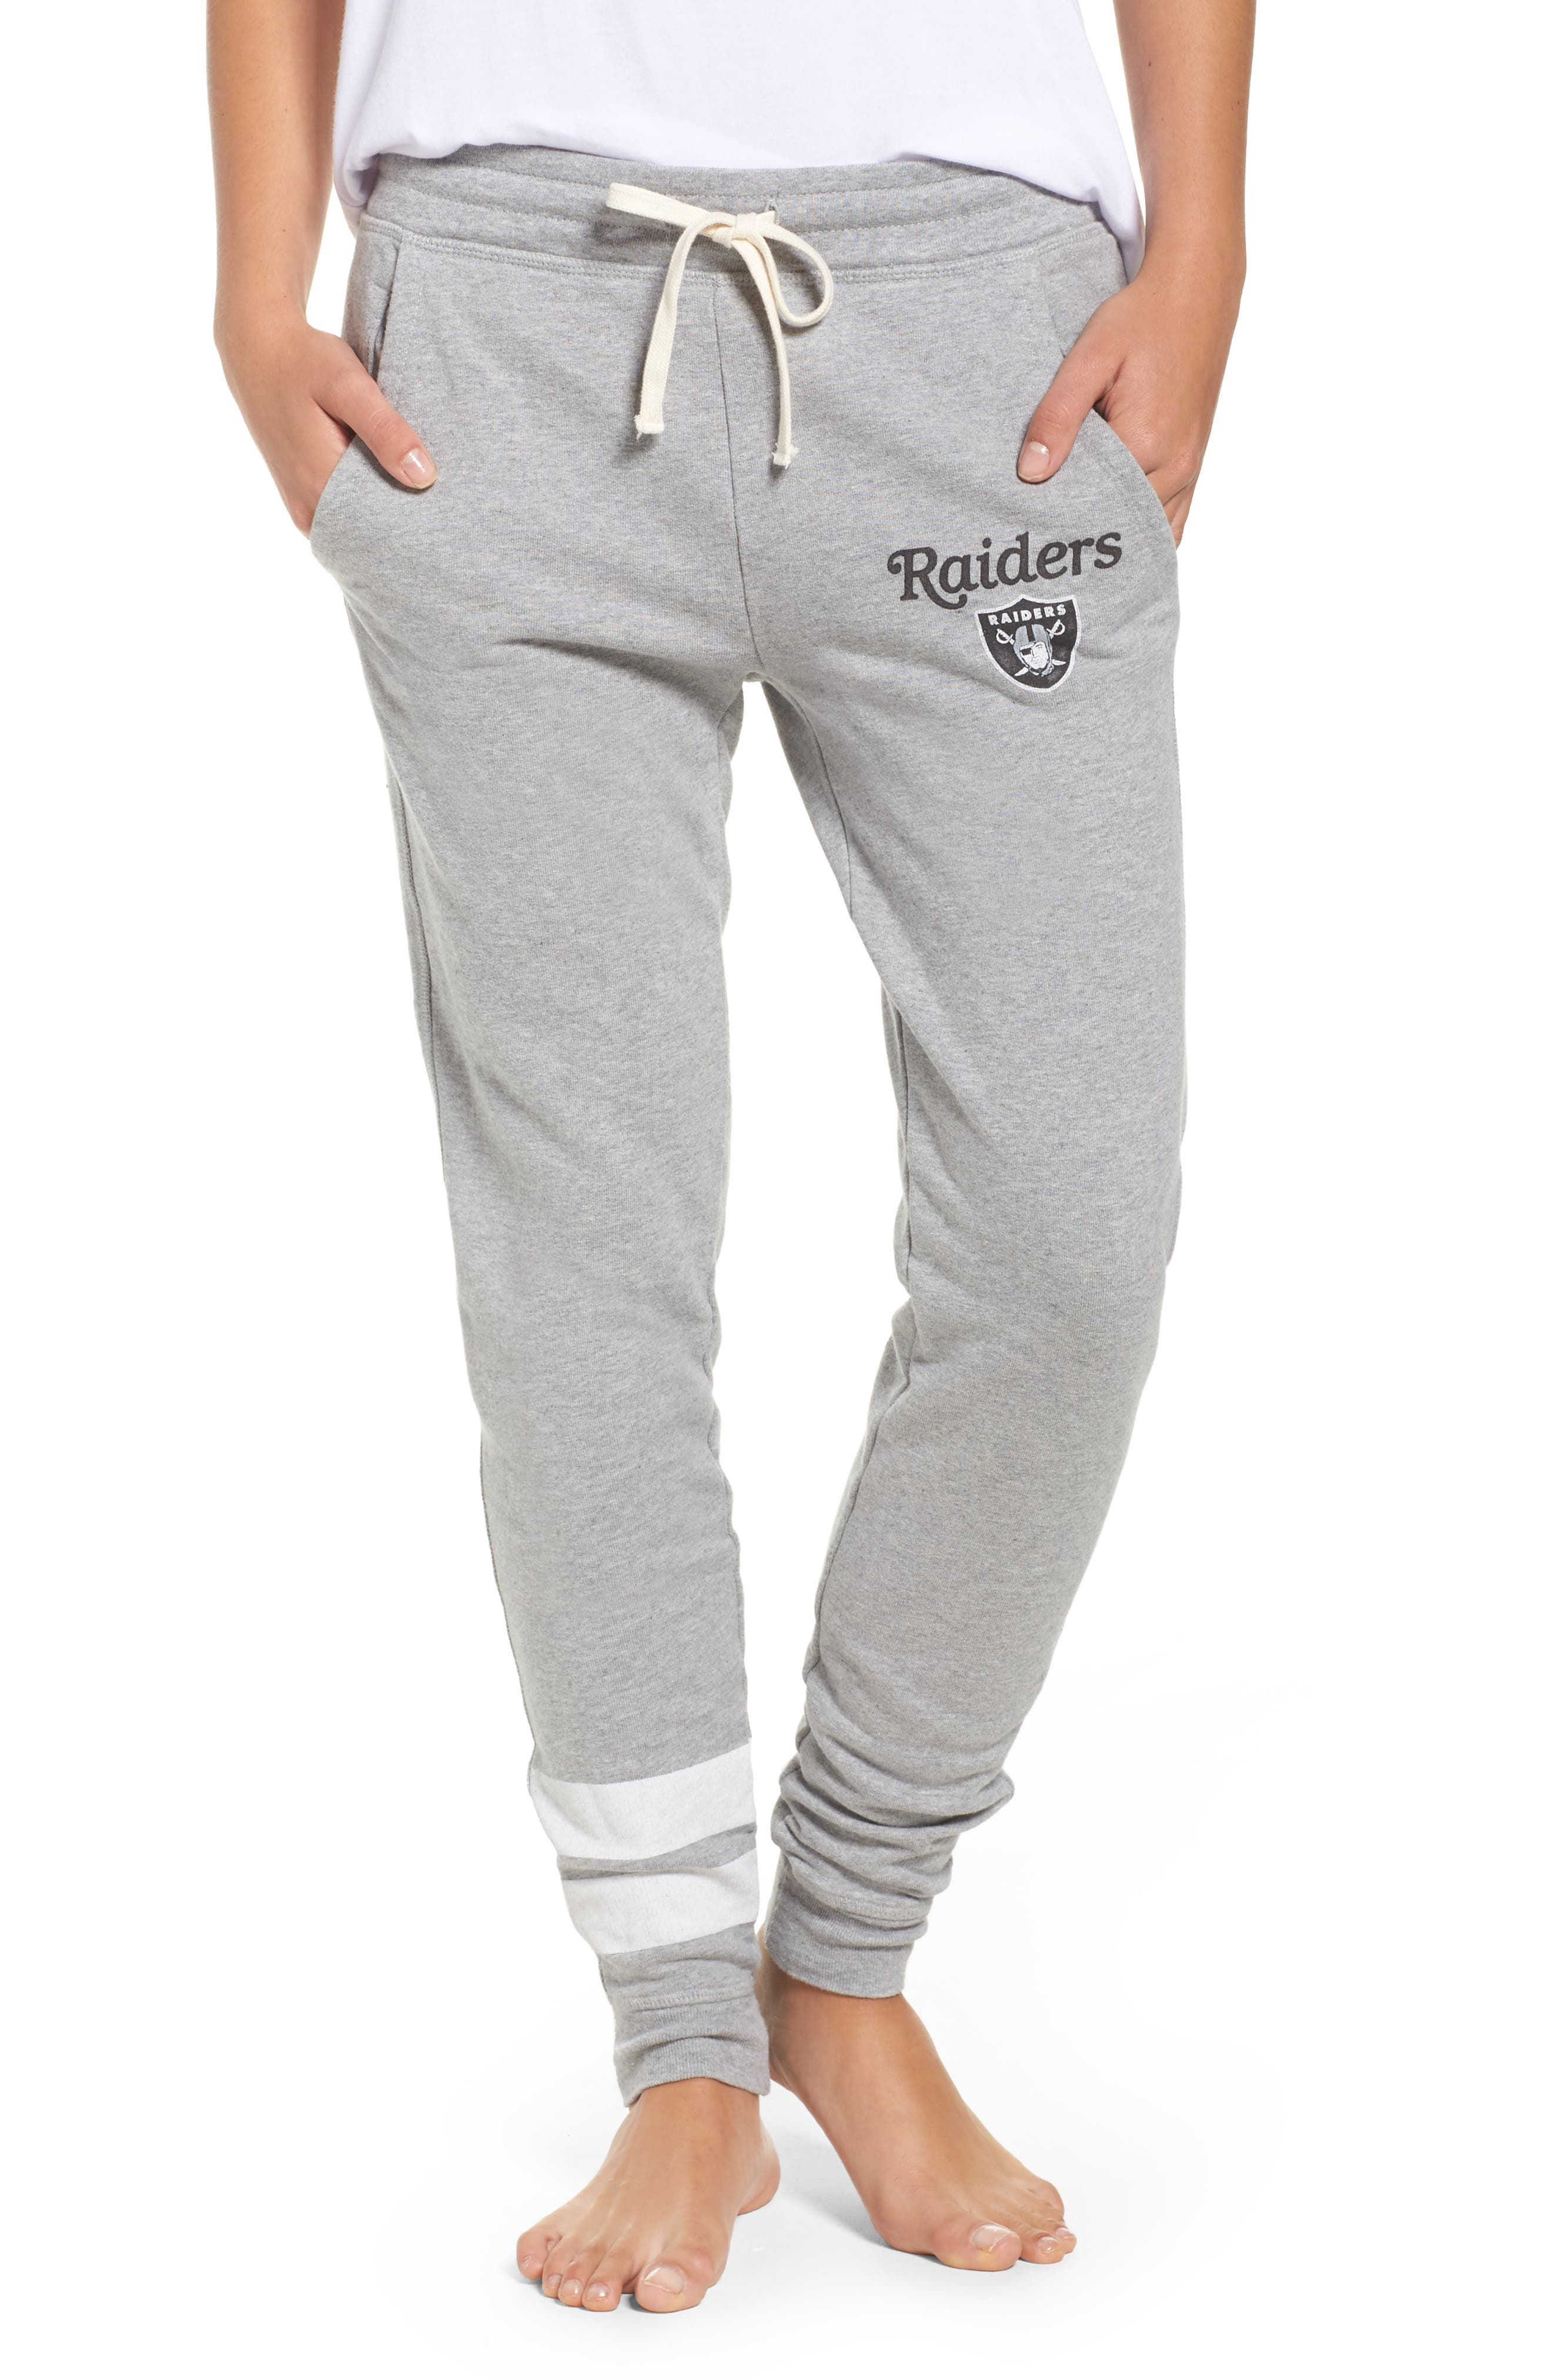 Main Image - Junk Food NFL Oakland Raiders Sweatpants